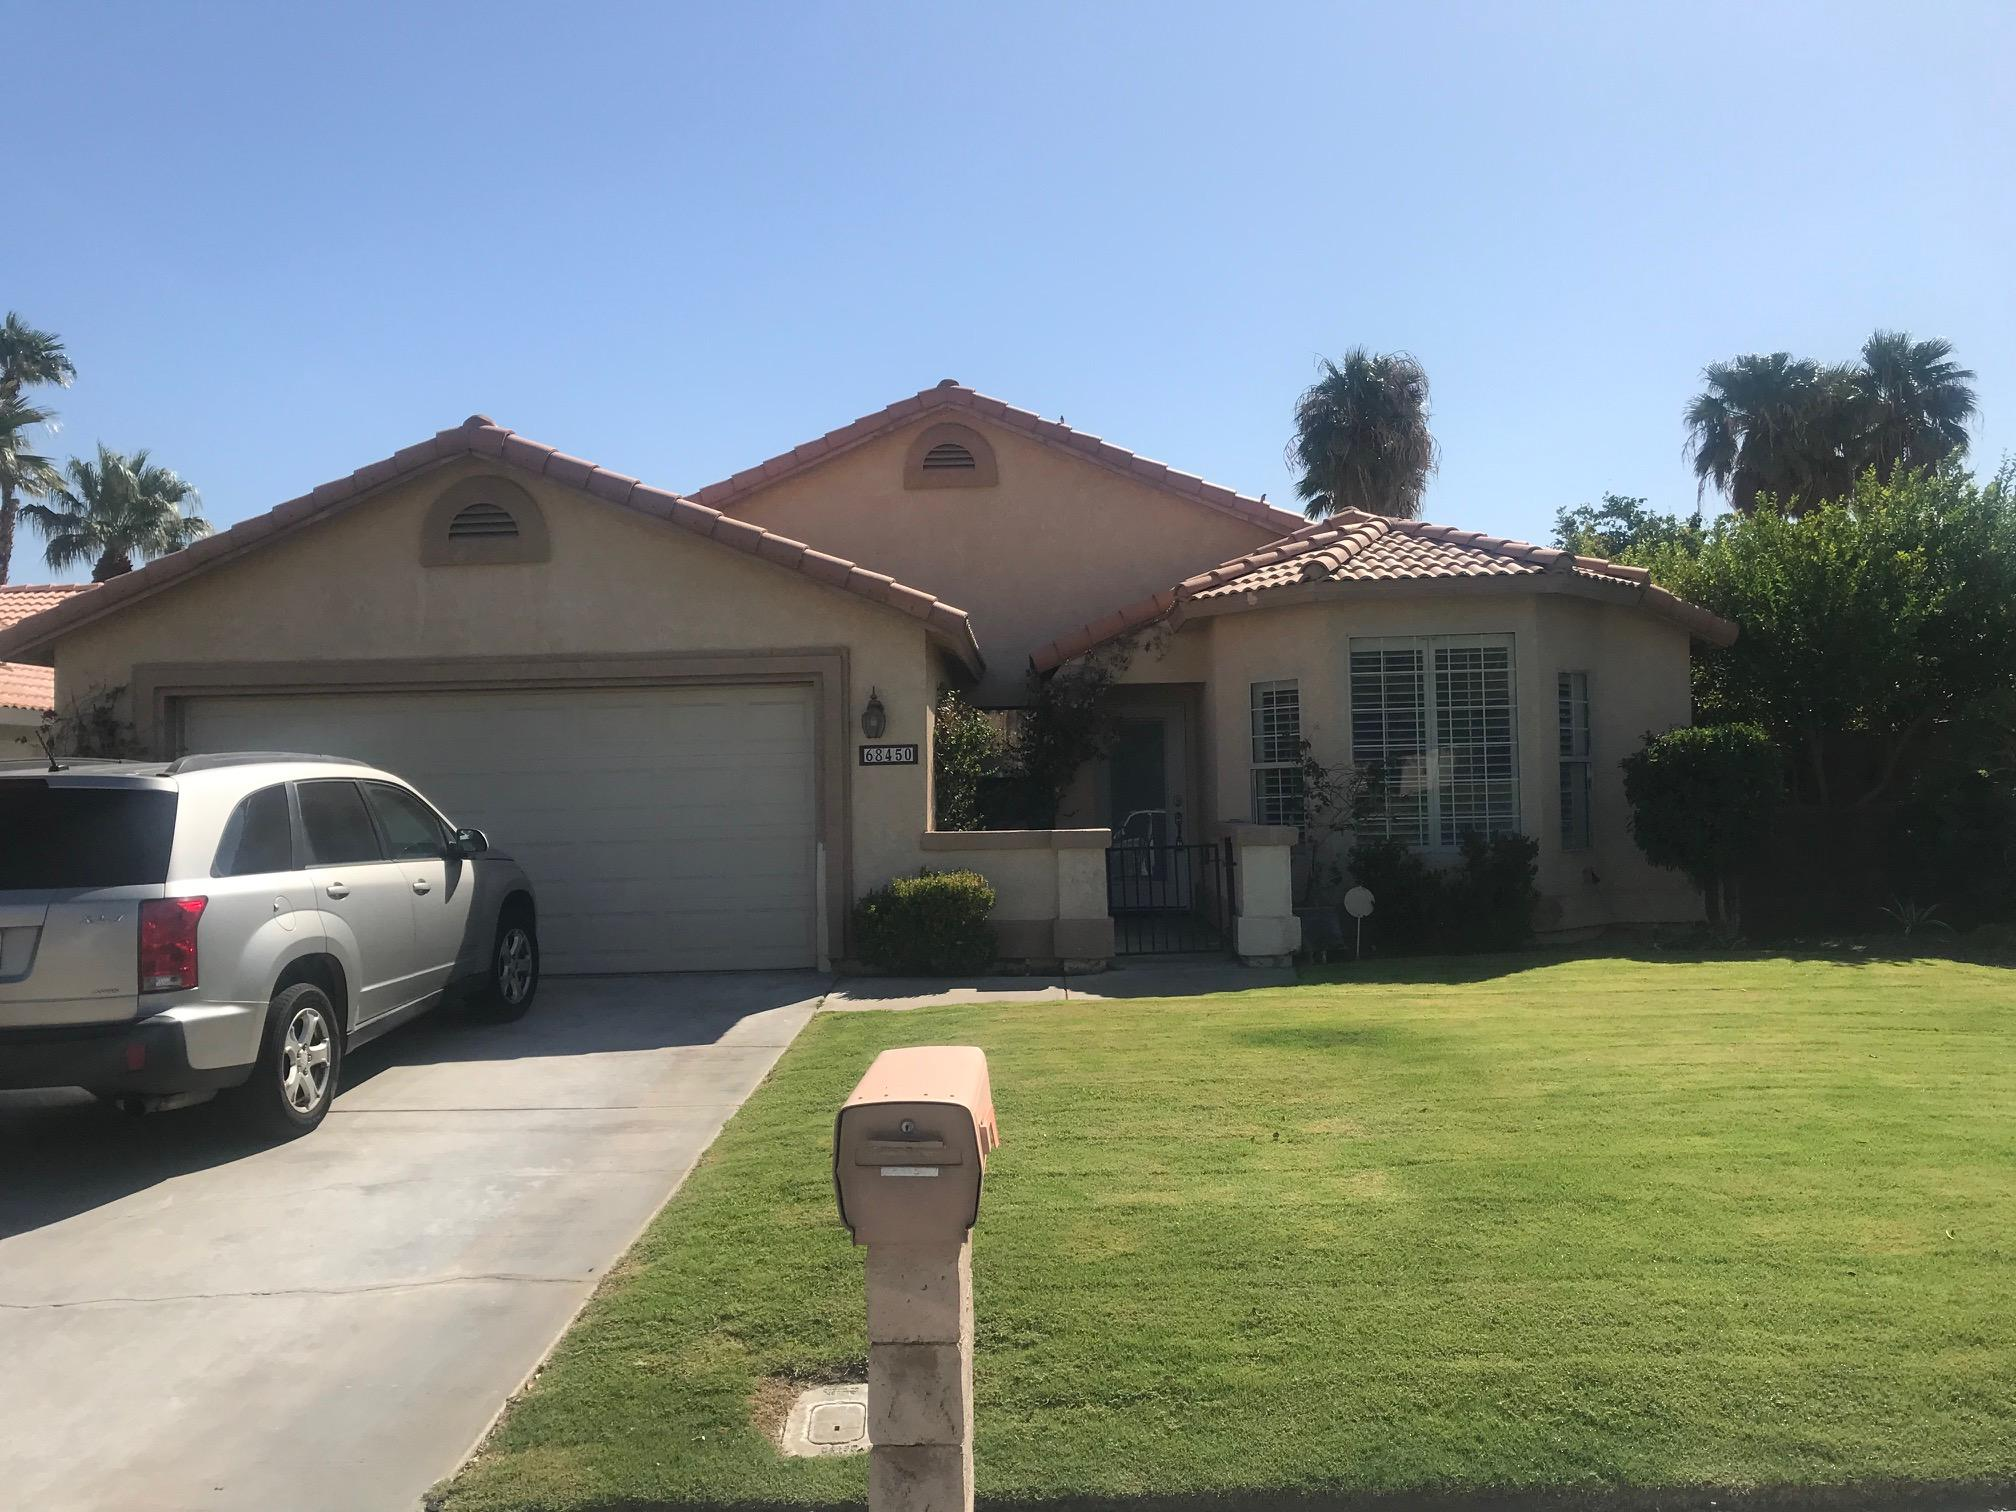 68450 Descanso Circle, Cathedral City, California 92234, 3 Bedrooms Bedrooms, ,2 BathroomsBathrooms,Residential,Sold,68450 Descanso Circle,219030233